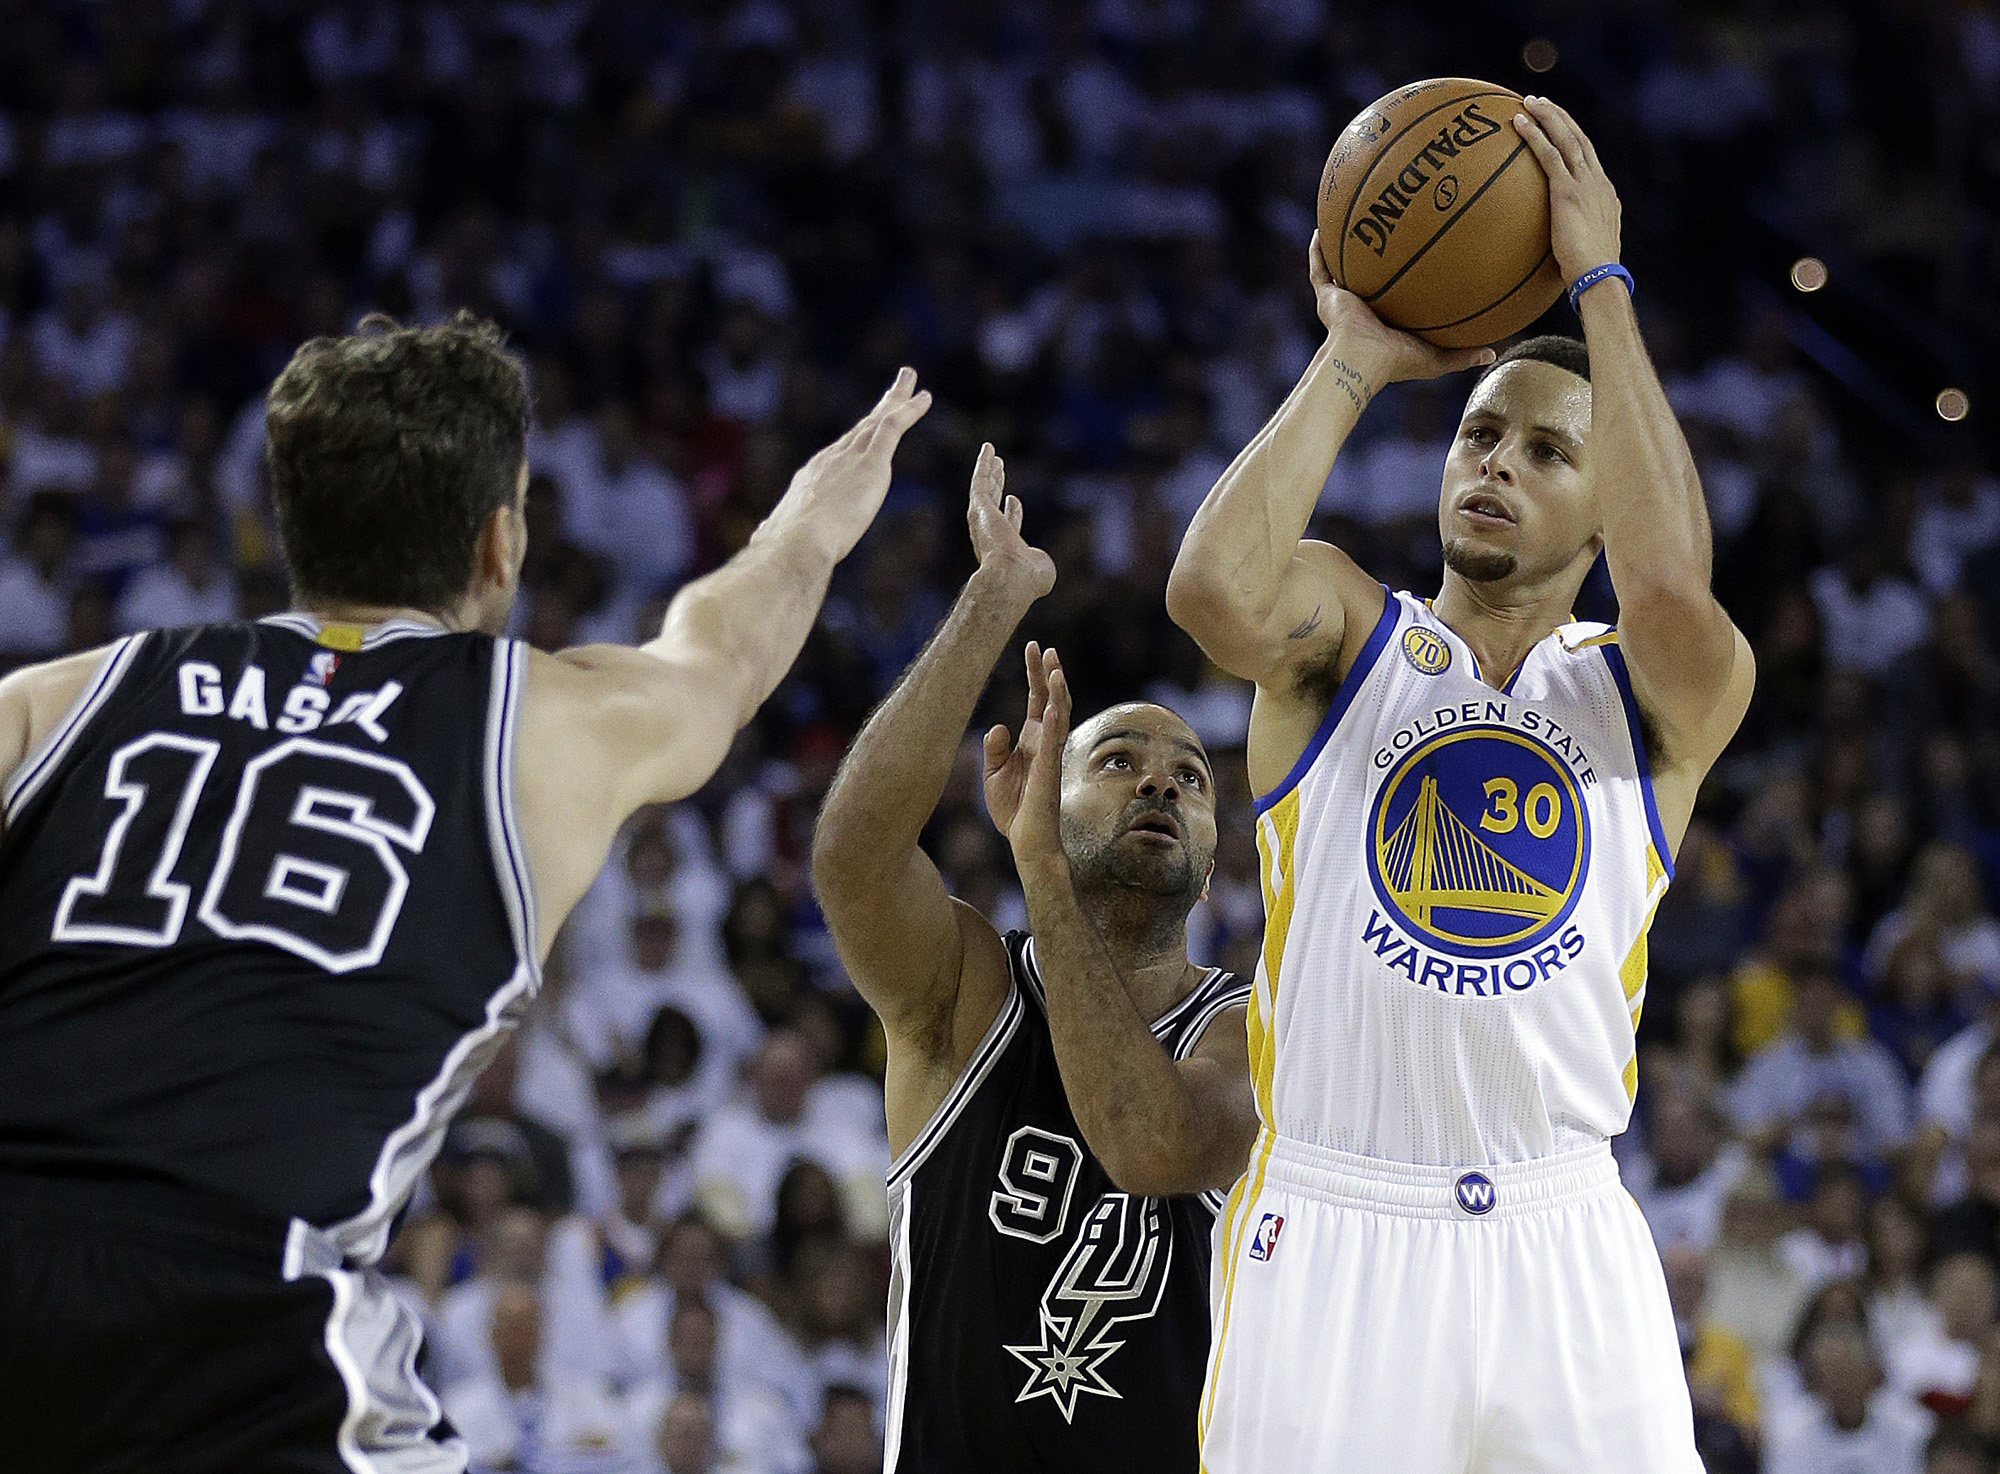 Golden State Warriors' Stephen Curry, right, shoots against San Antonio Spurs' Tony Parker (9) and Pau Gasol (16) during the first half of an NBA basketball game Tuesday, Oct. 25, 2016, in Oakland, Calif. (Ben Margot/AP)